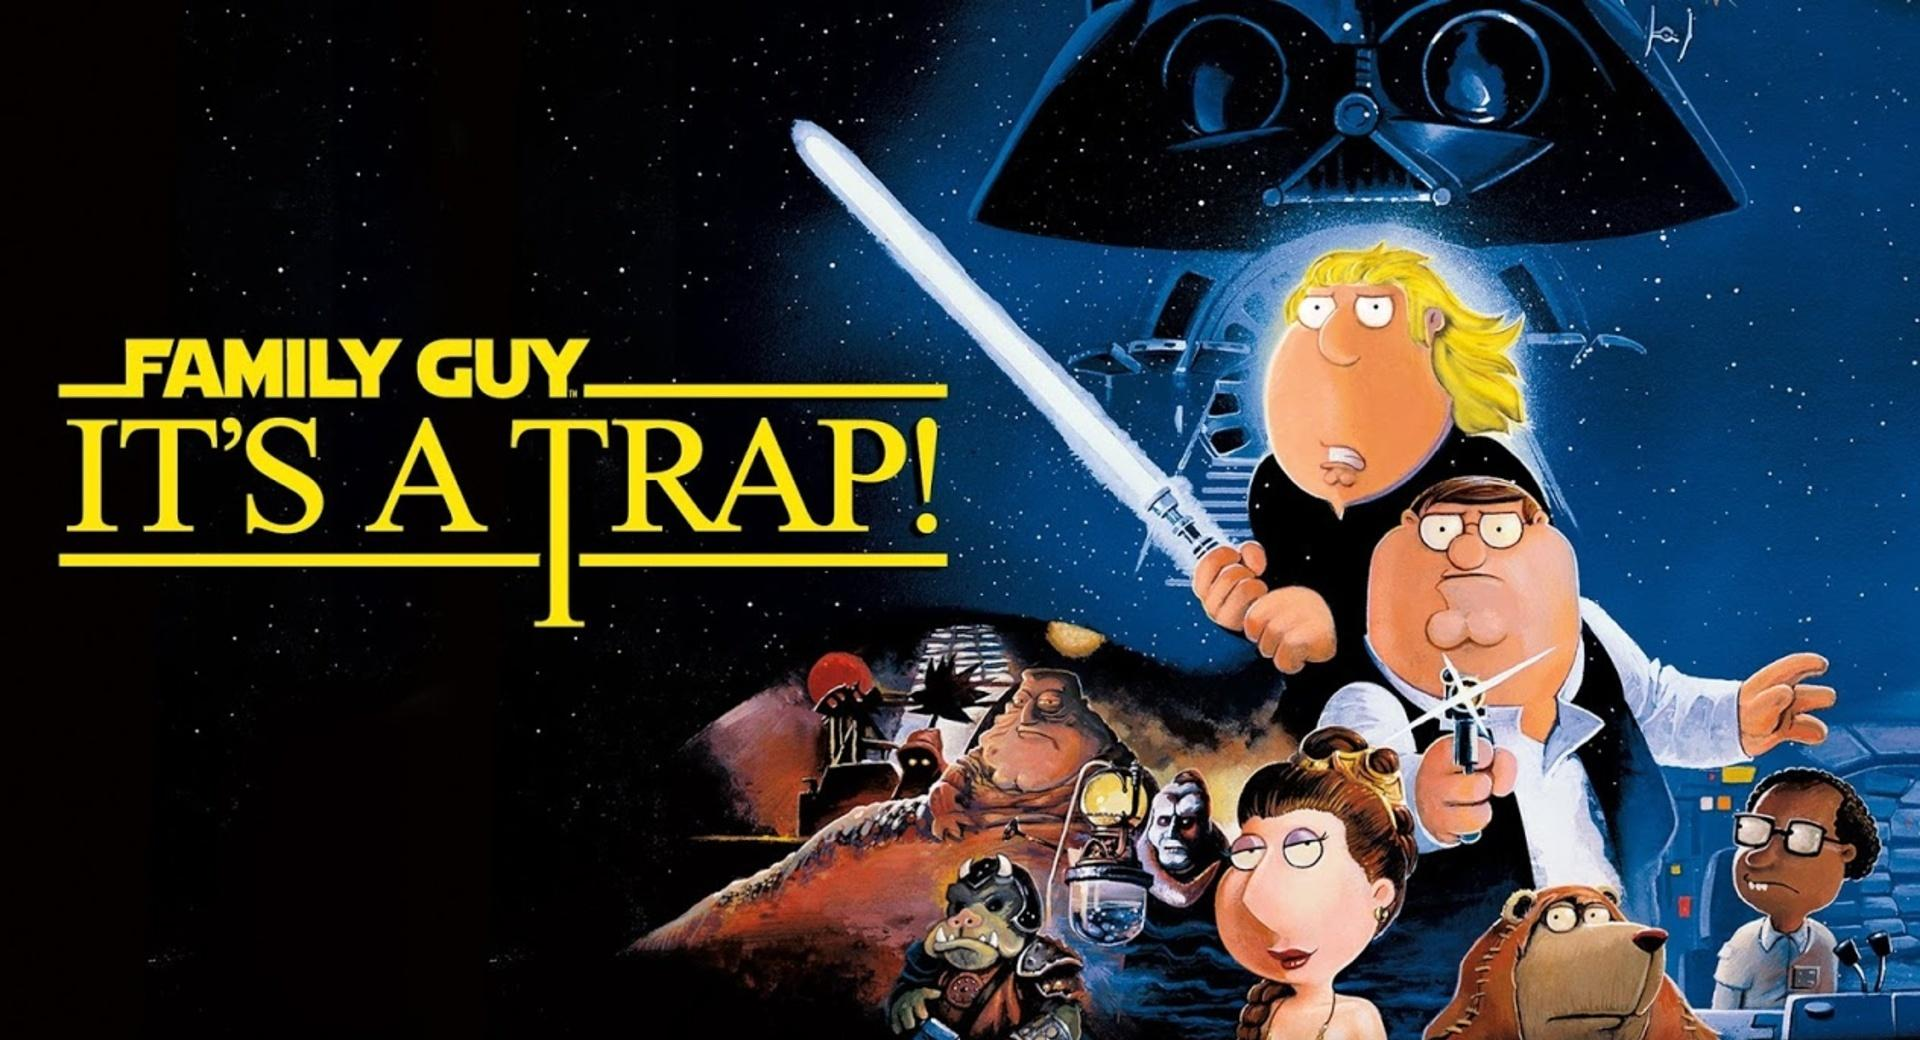 Family Guy Its A Trap wallpapers HD quality